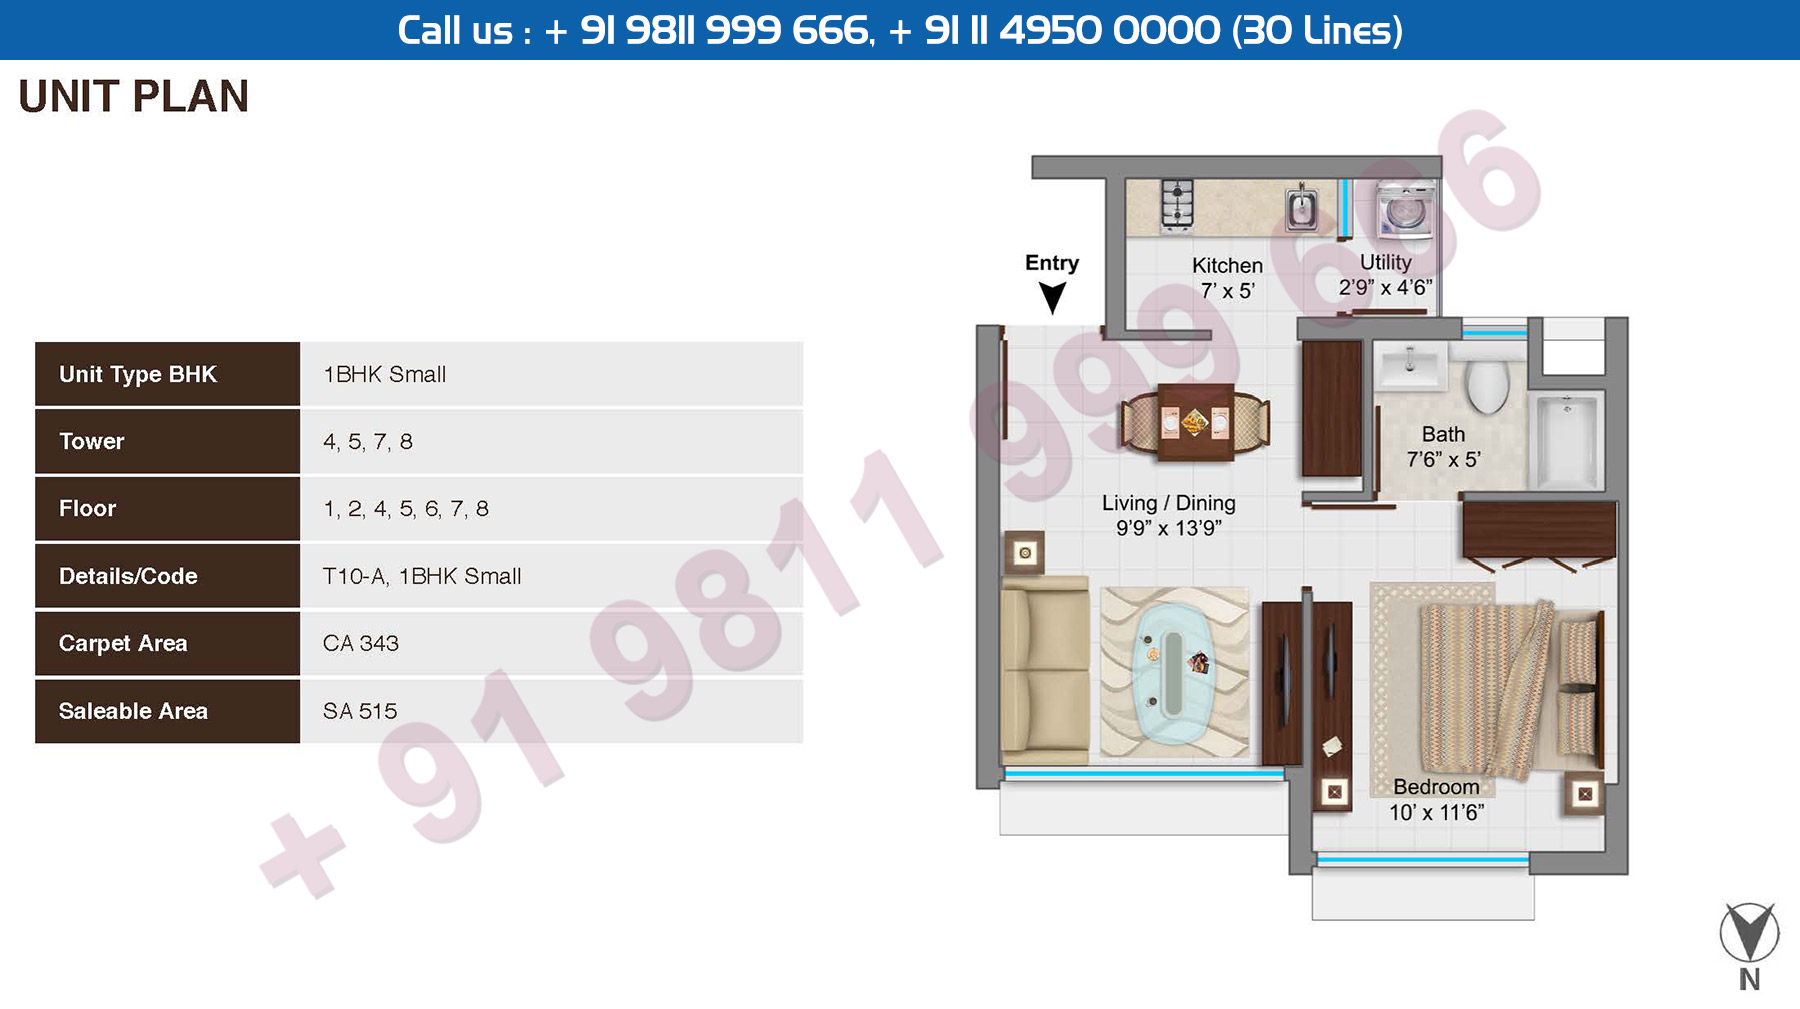 1 BHK Small : 515 Sq.Ft.